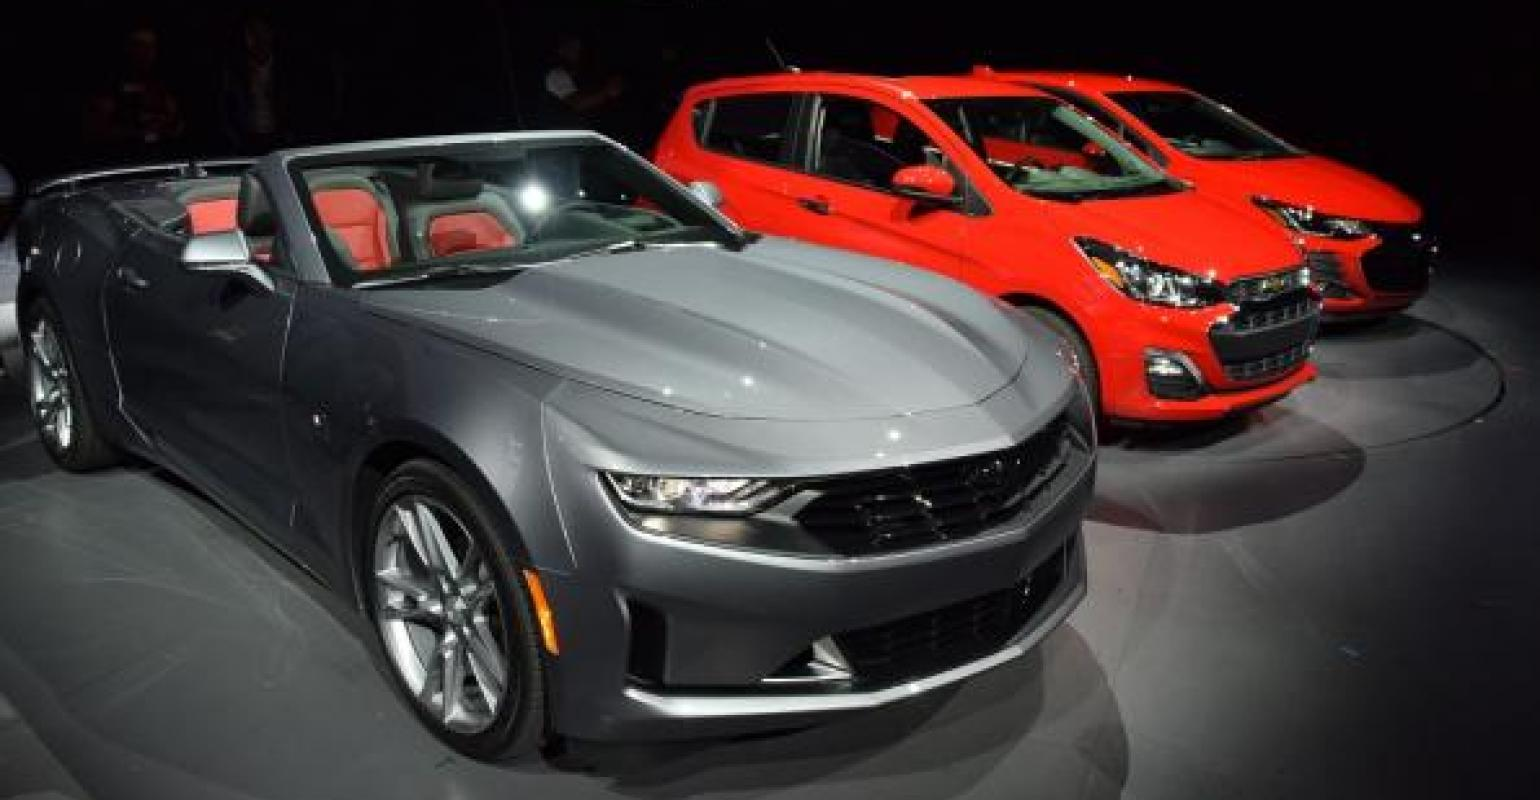 Chevy Unveilings With Car Sales Down Chevy Revitalizing Lineup